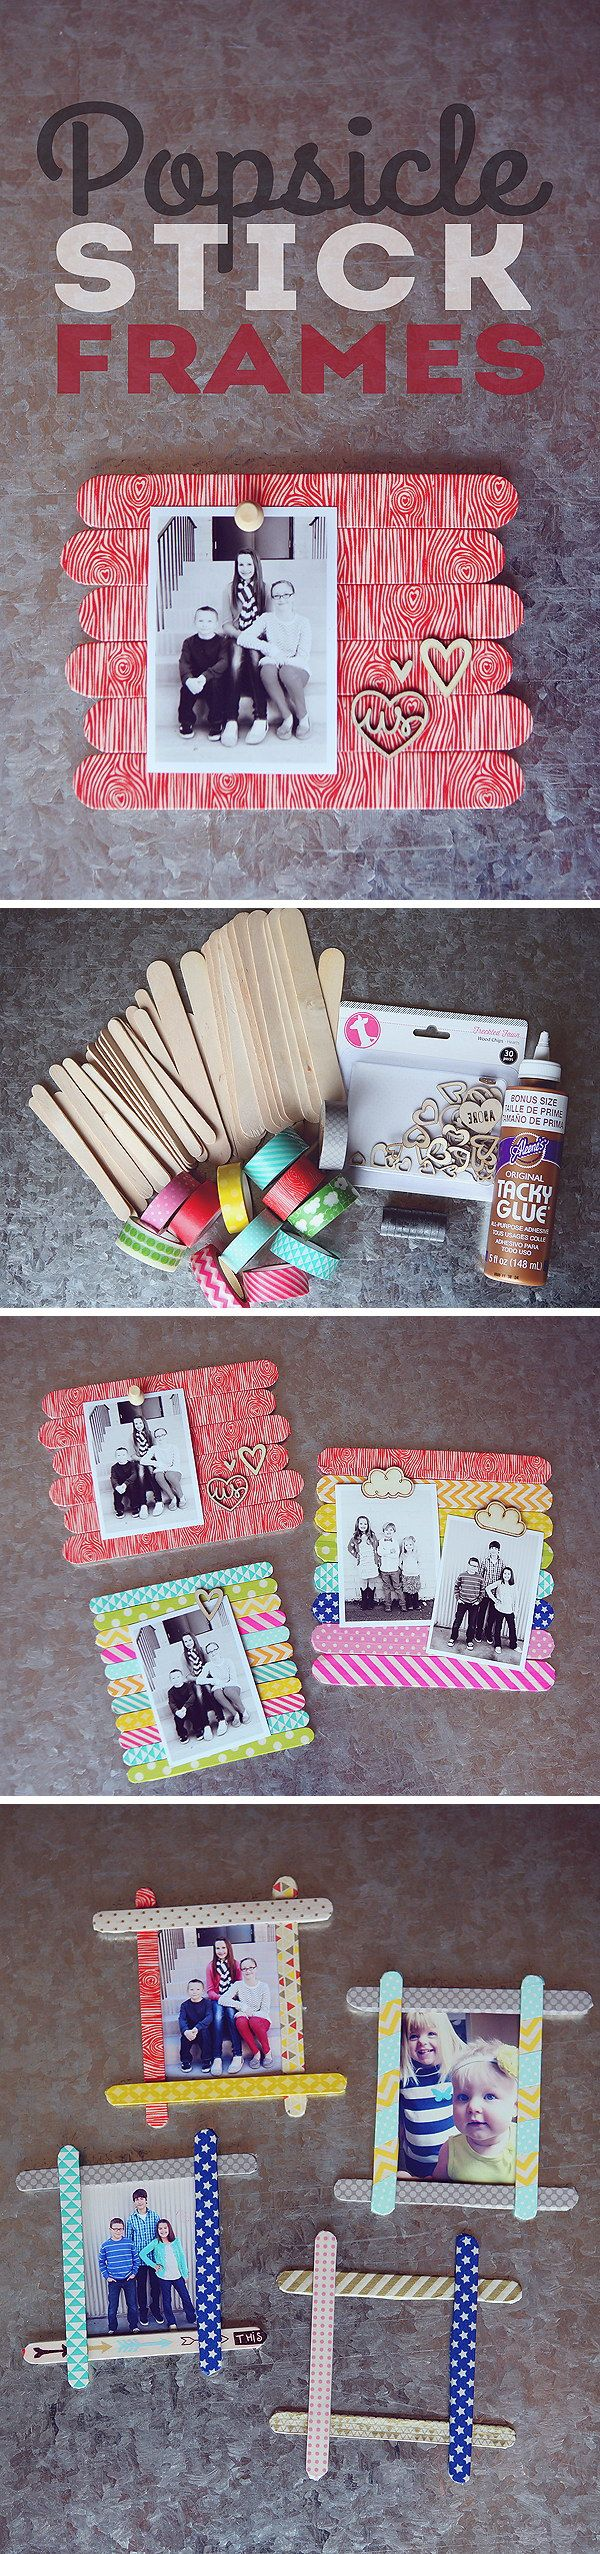 15 DIY Mothers Day Gifts Ideas   Pinterest   Craft, Gift and Crafty